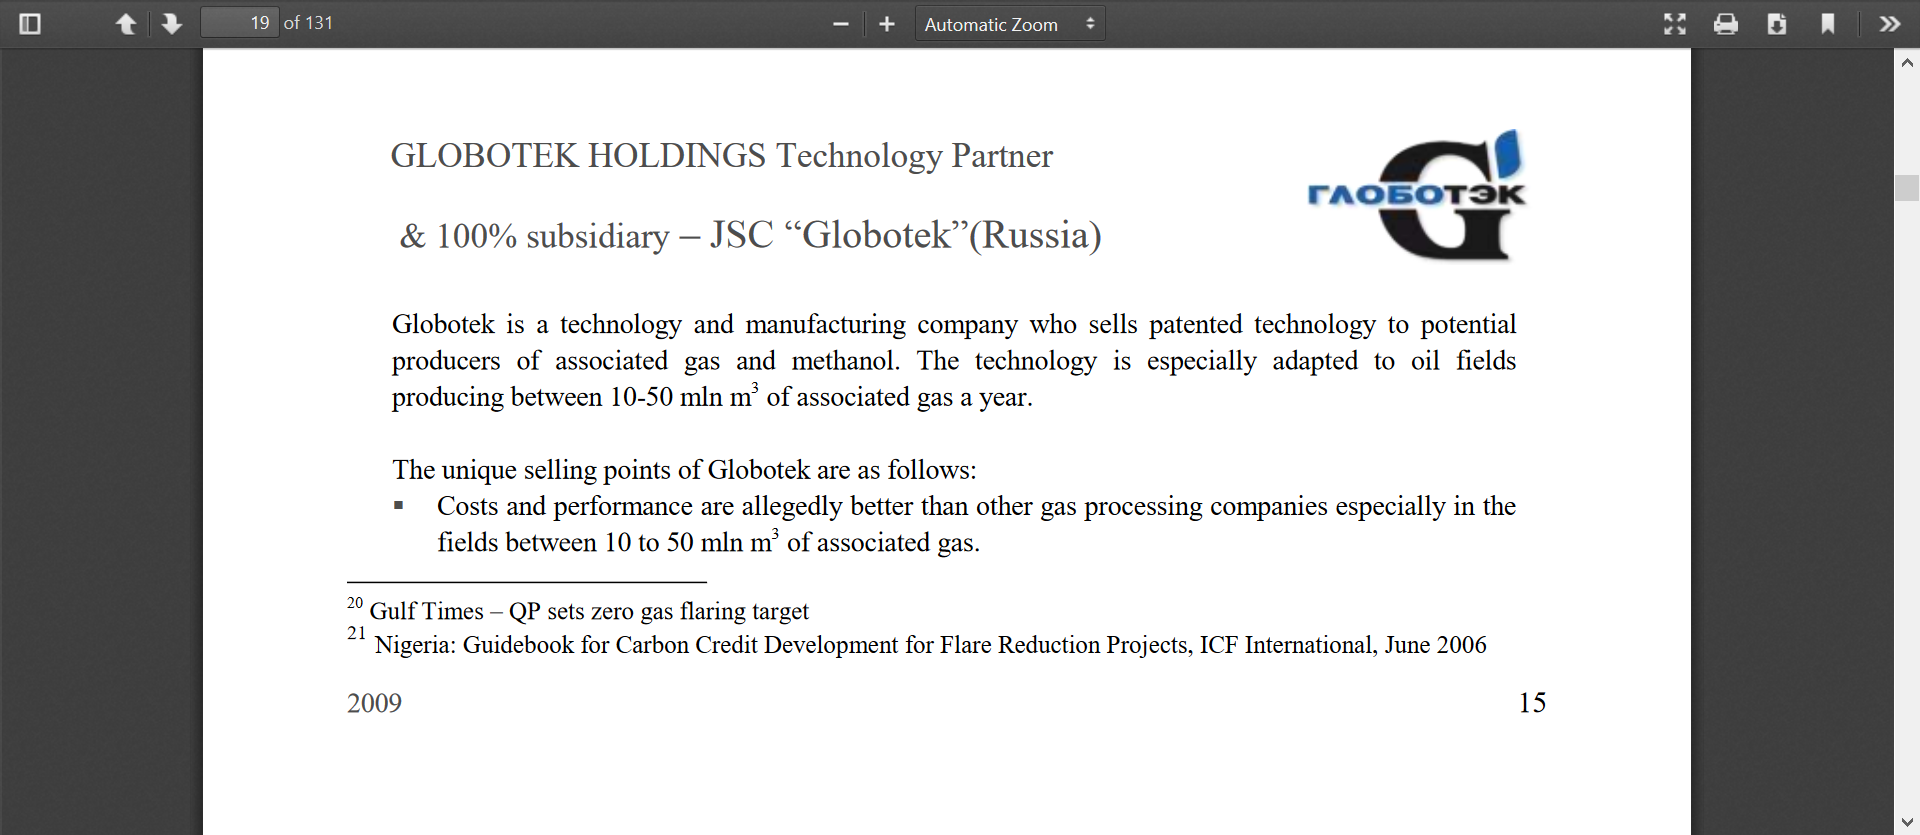 Globotek Holdings owned by Russia page 15.png